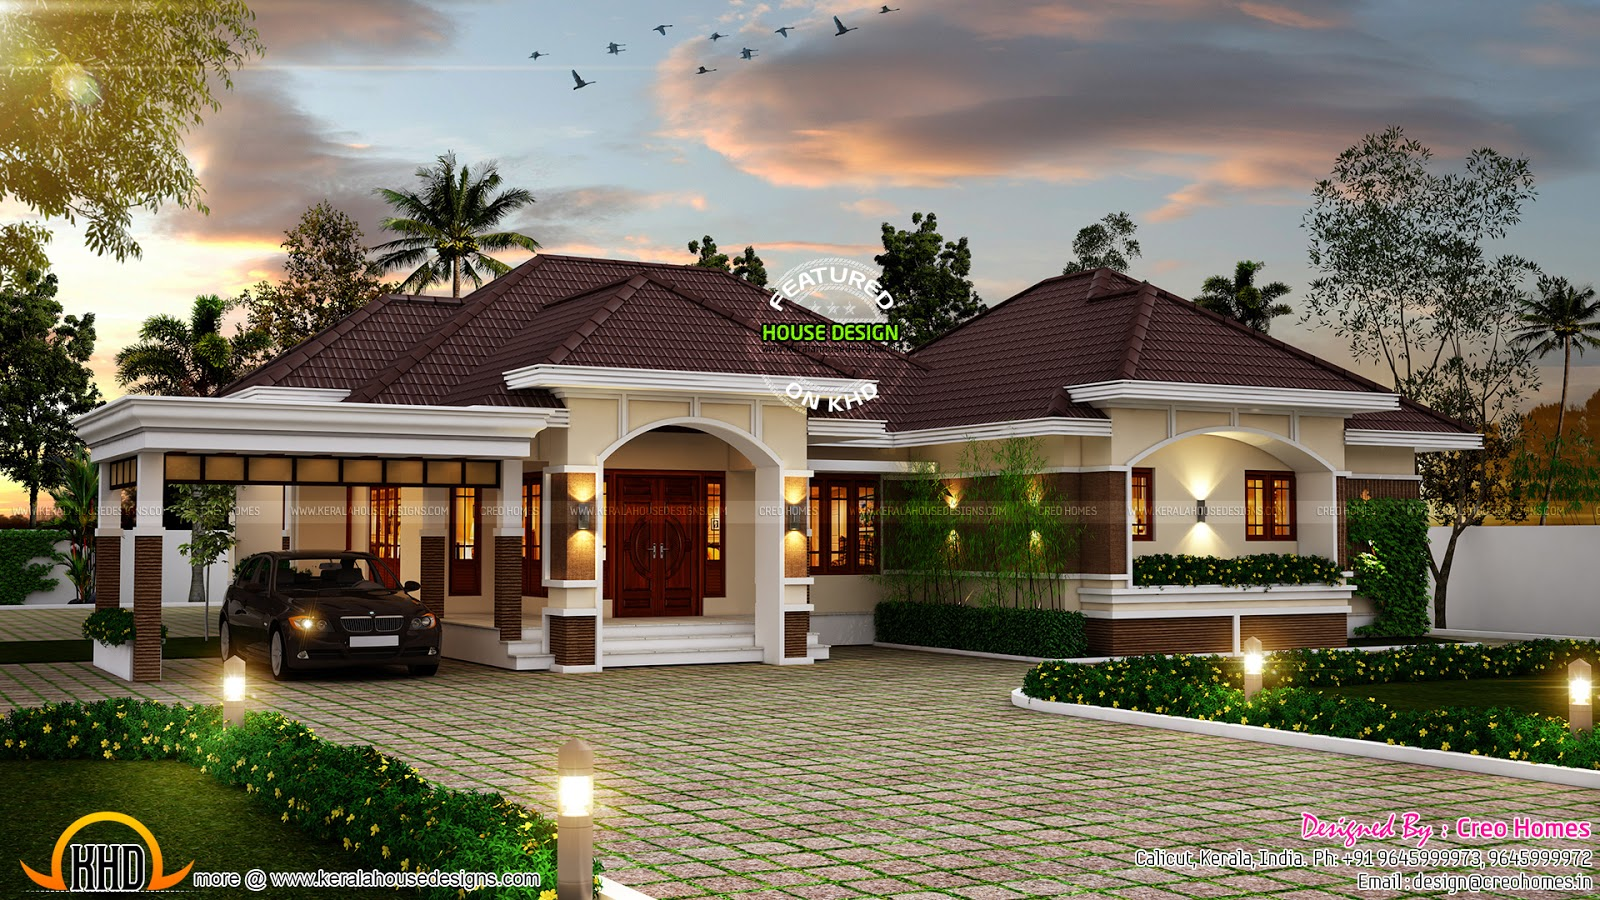 Outstanding bungalow in kerala kerala home design and for Kerala house plan images